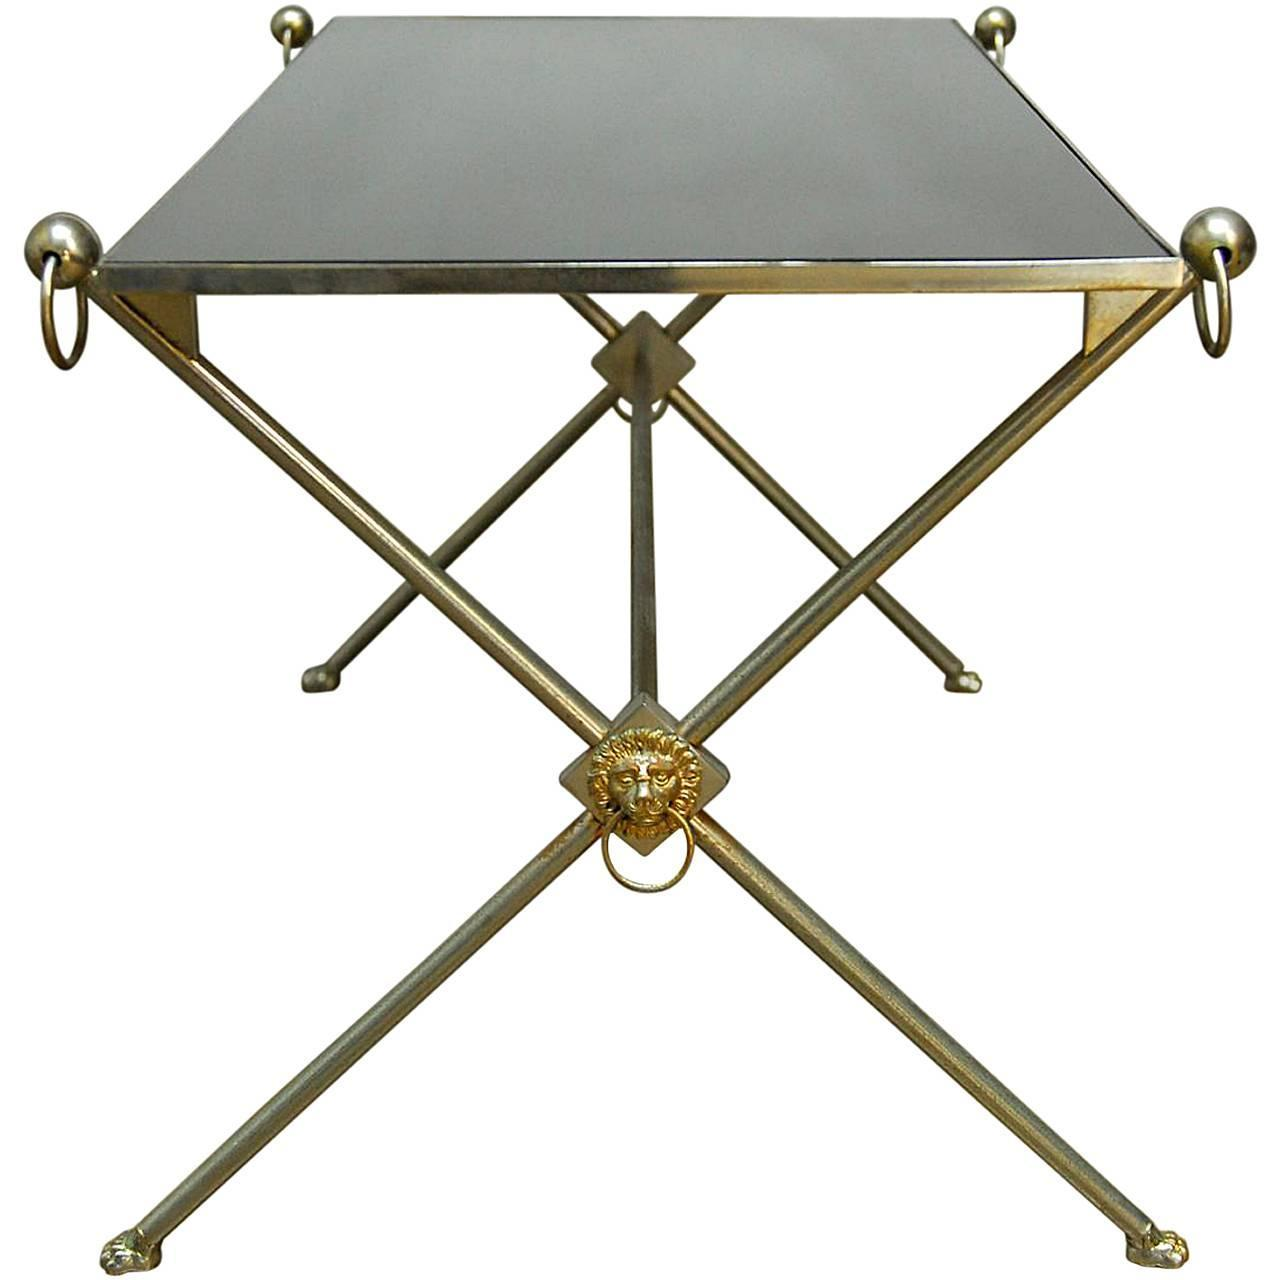 Silver Metal And Glass Coffee Table: Maison Bagues Silver Metal And Glass Cocktail Table At 1stdibs